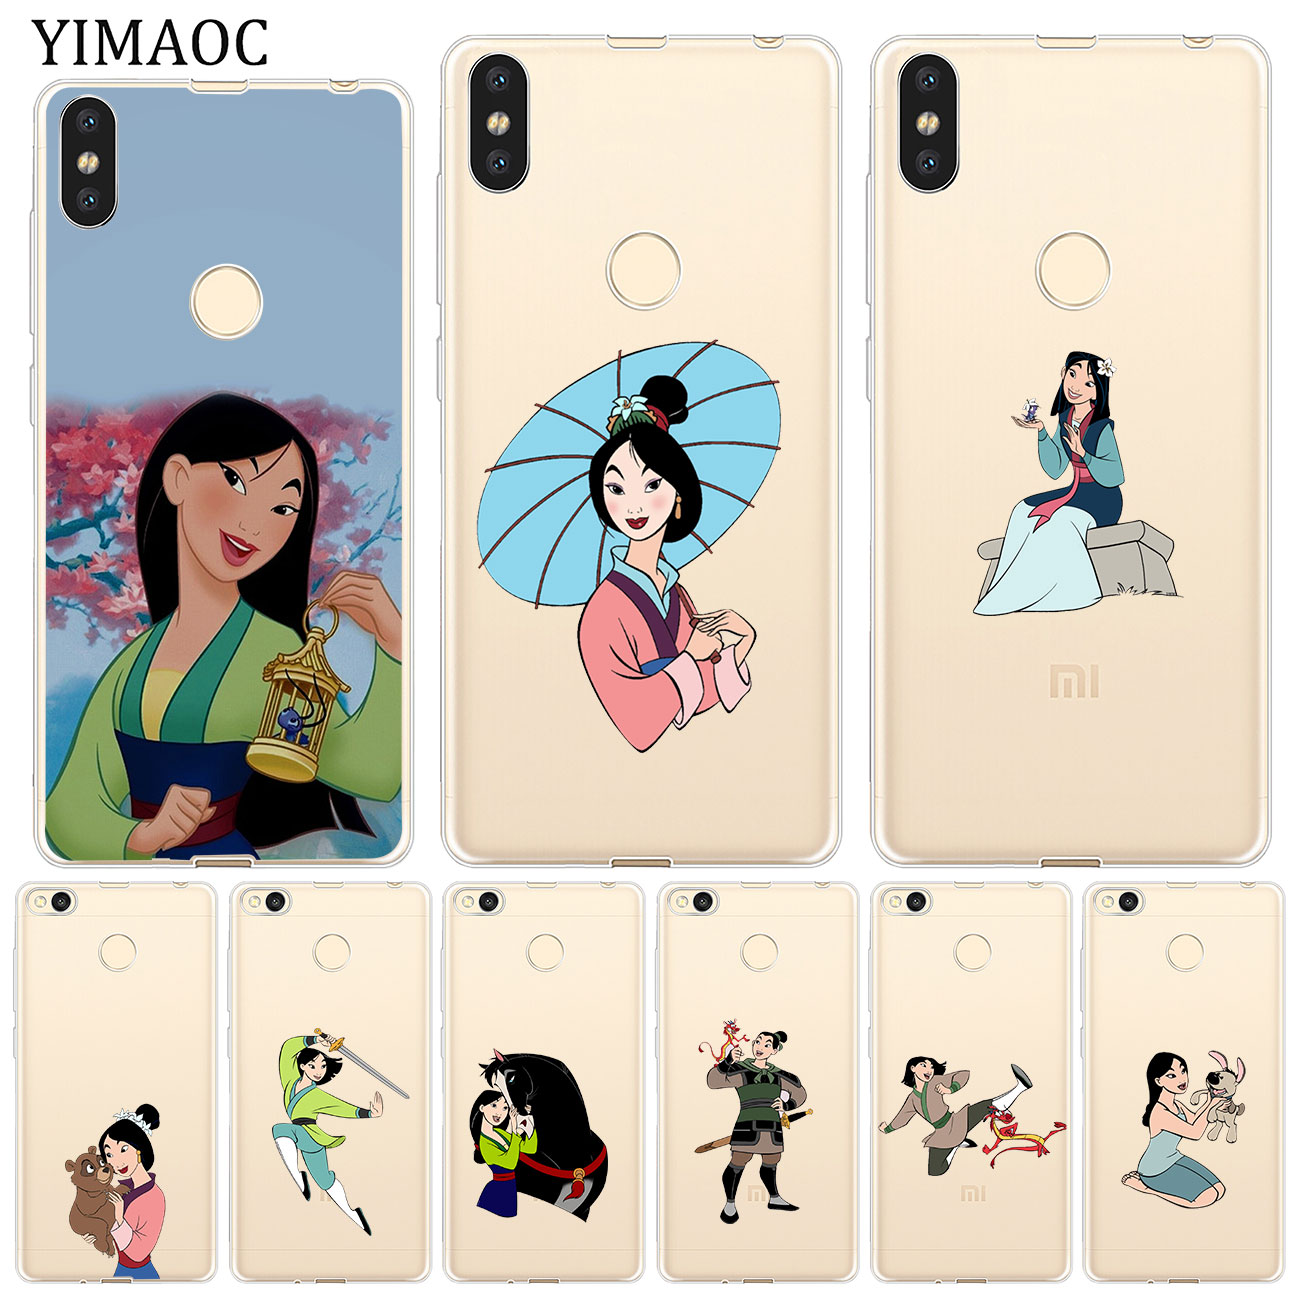 YIMAOC Cartoon mulan Anime Soft Silicone Case for Xiaomi Redmi K20 Pro 7A 6A 4A 4X S2 GO Note 8 7 6 5 Pro Plus 4 Cover